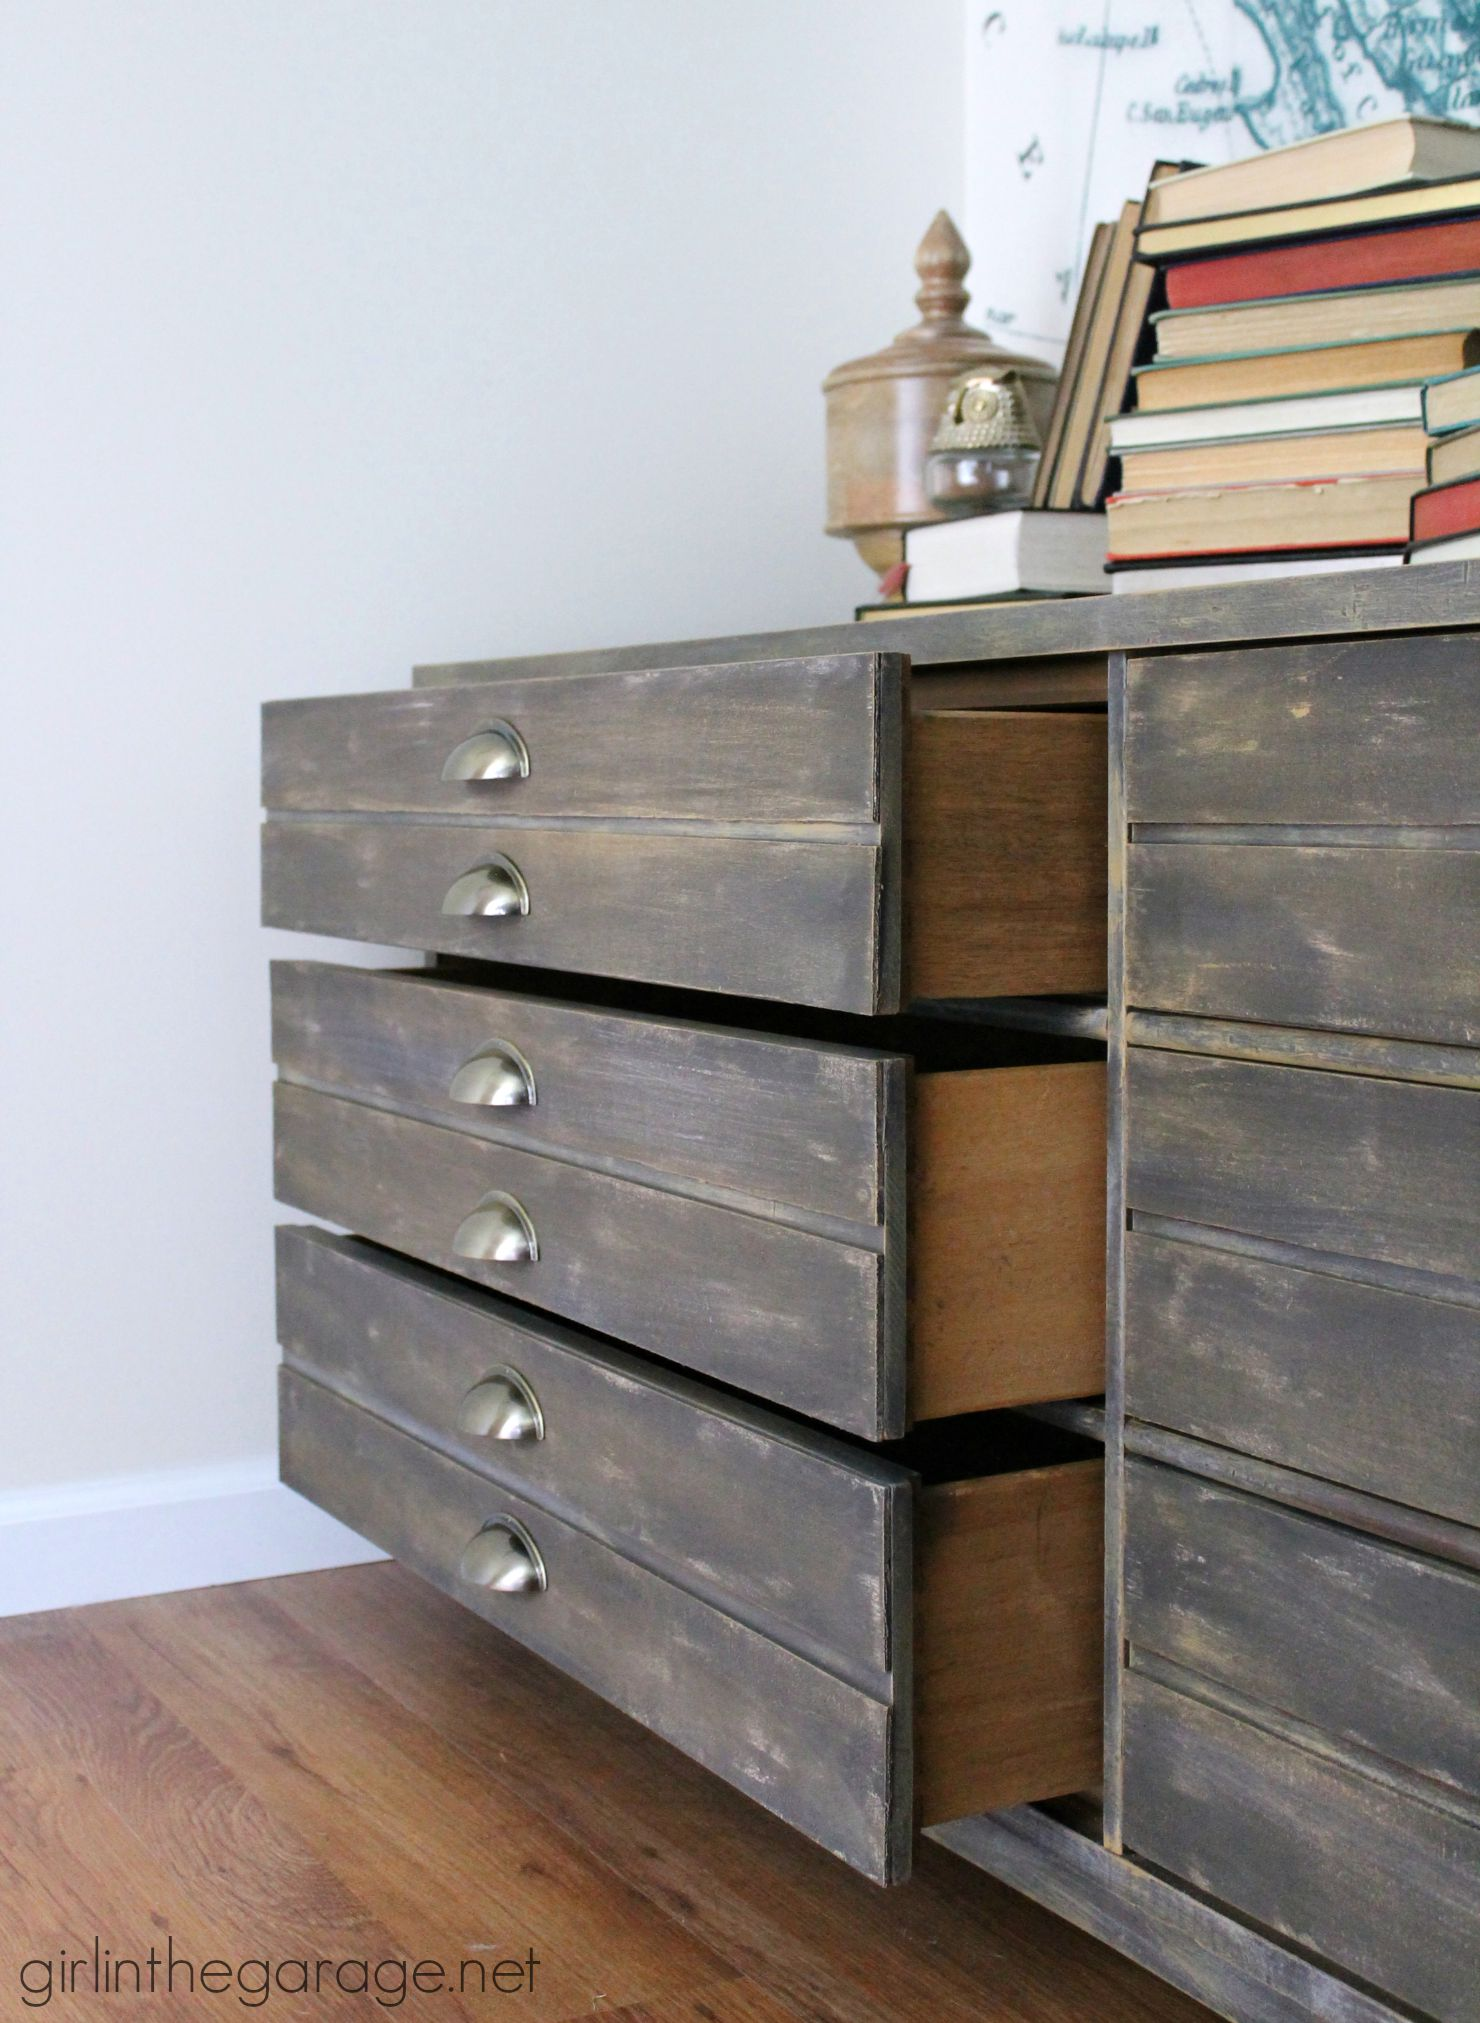 Anthropologie Inspired Dresser Makeover - girlinthegarage.net